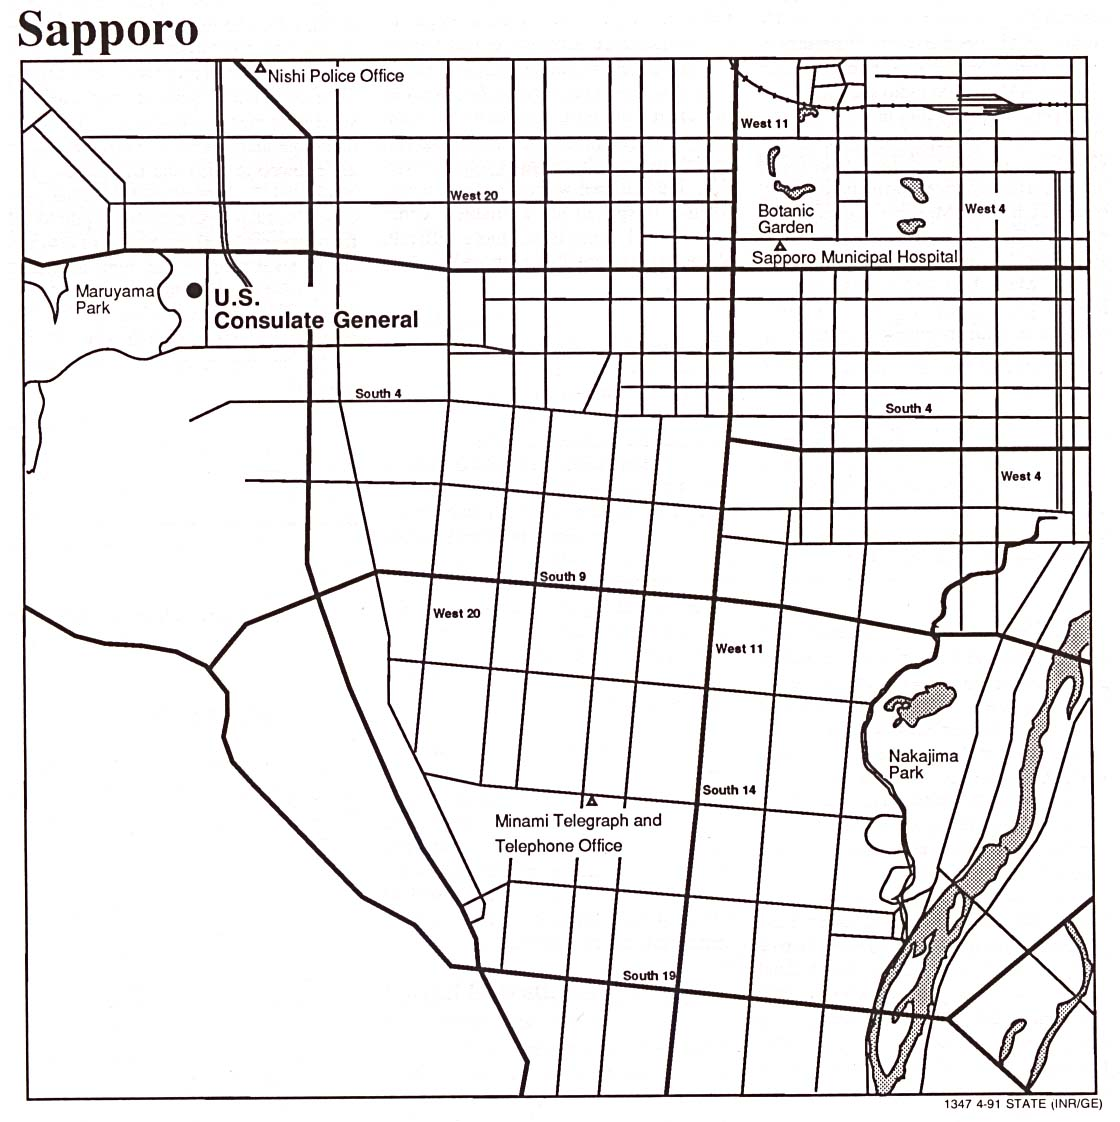 japan maps perry casta eda map collection ut library online Detailed Elevation Maps of Japan sapporo japan